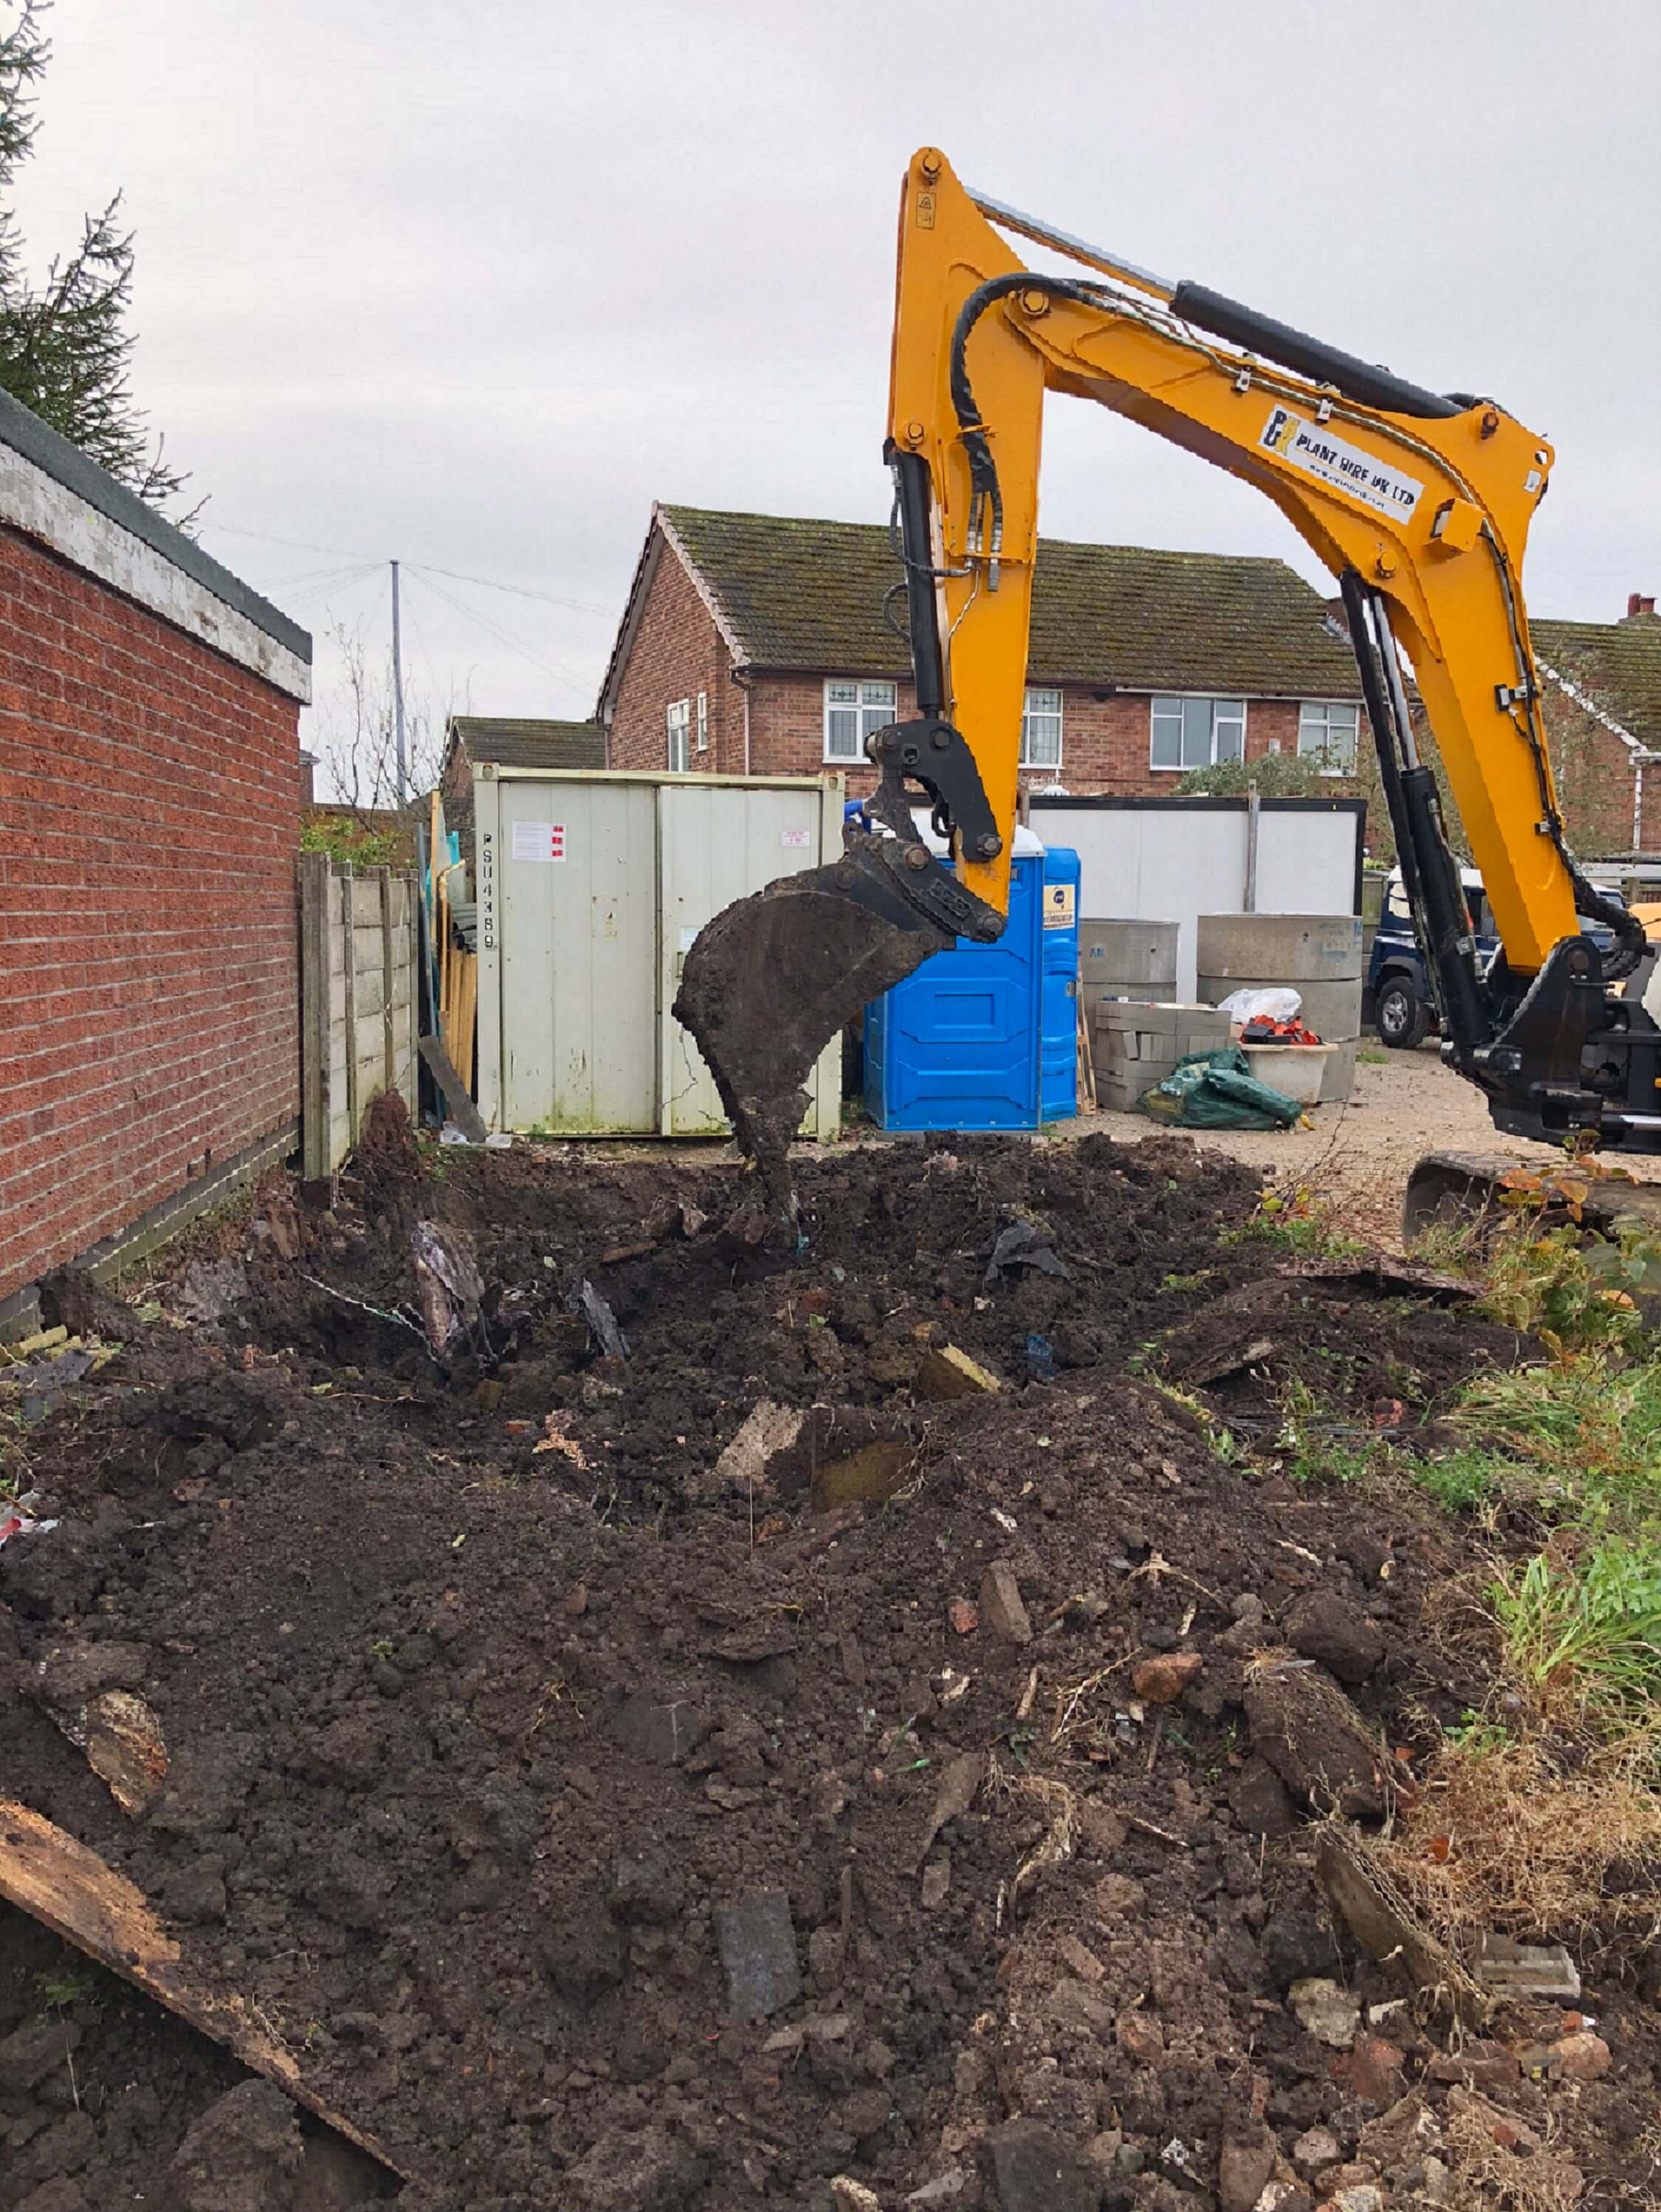 Excavation of Japanese Knotweed for a leading UK based construction company